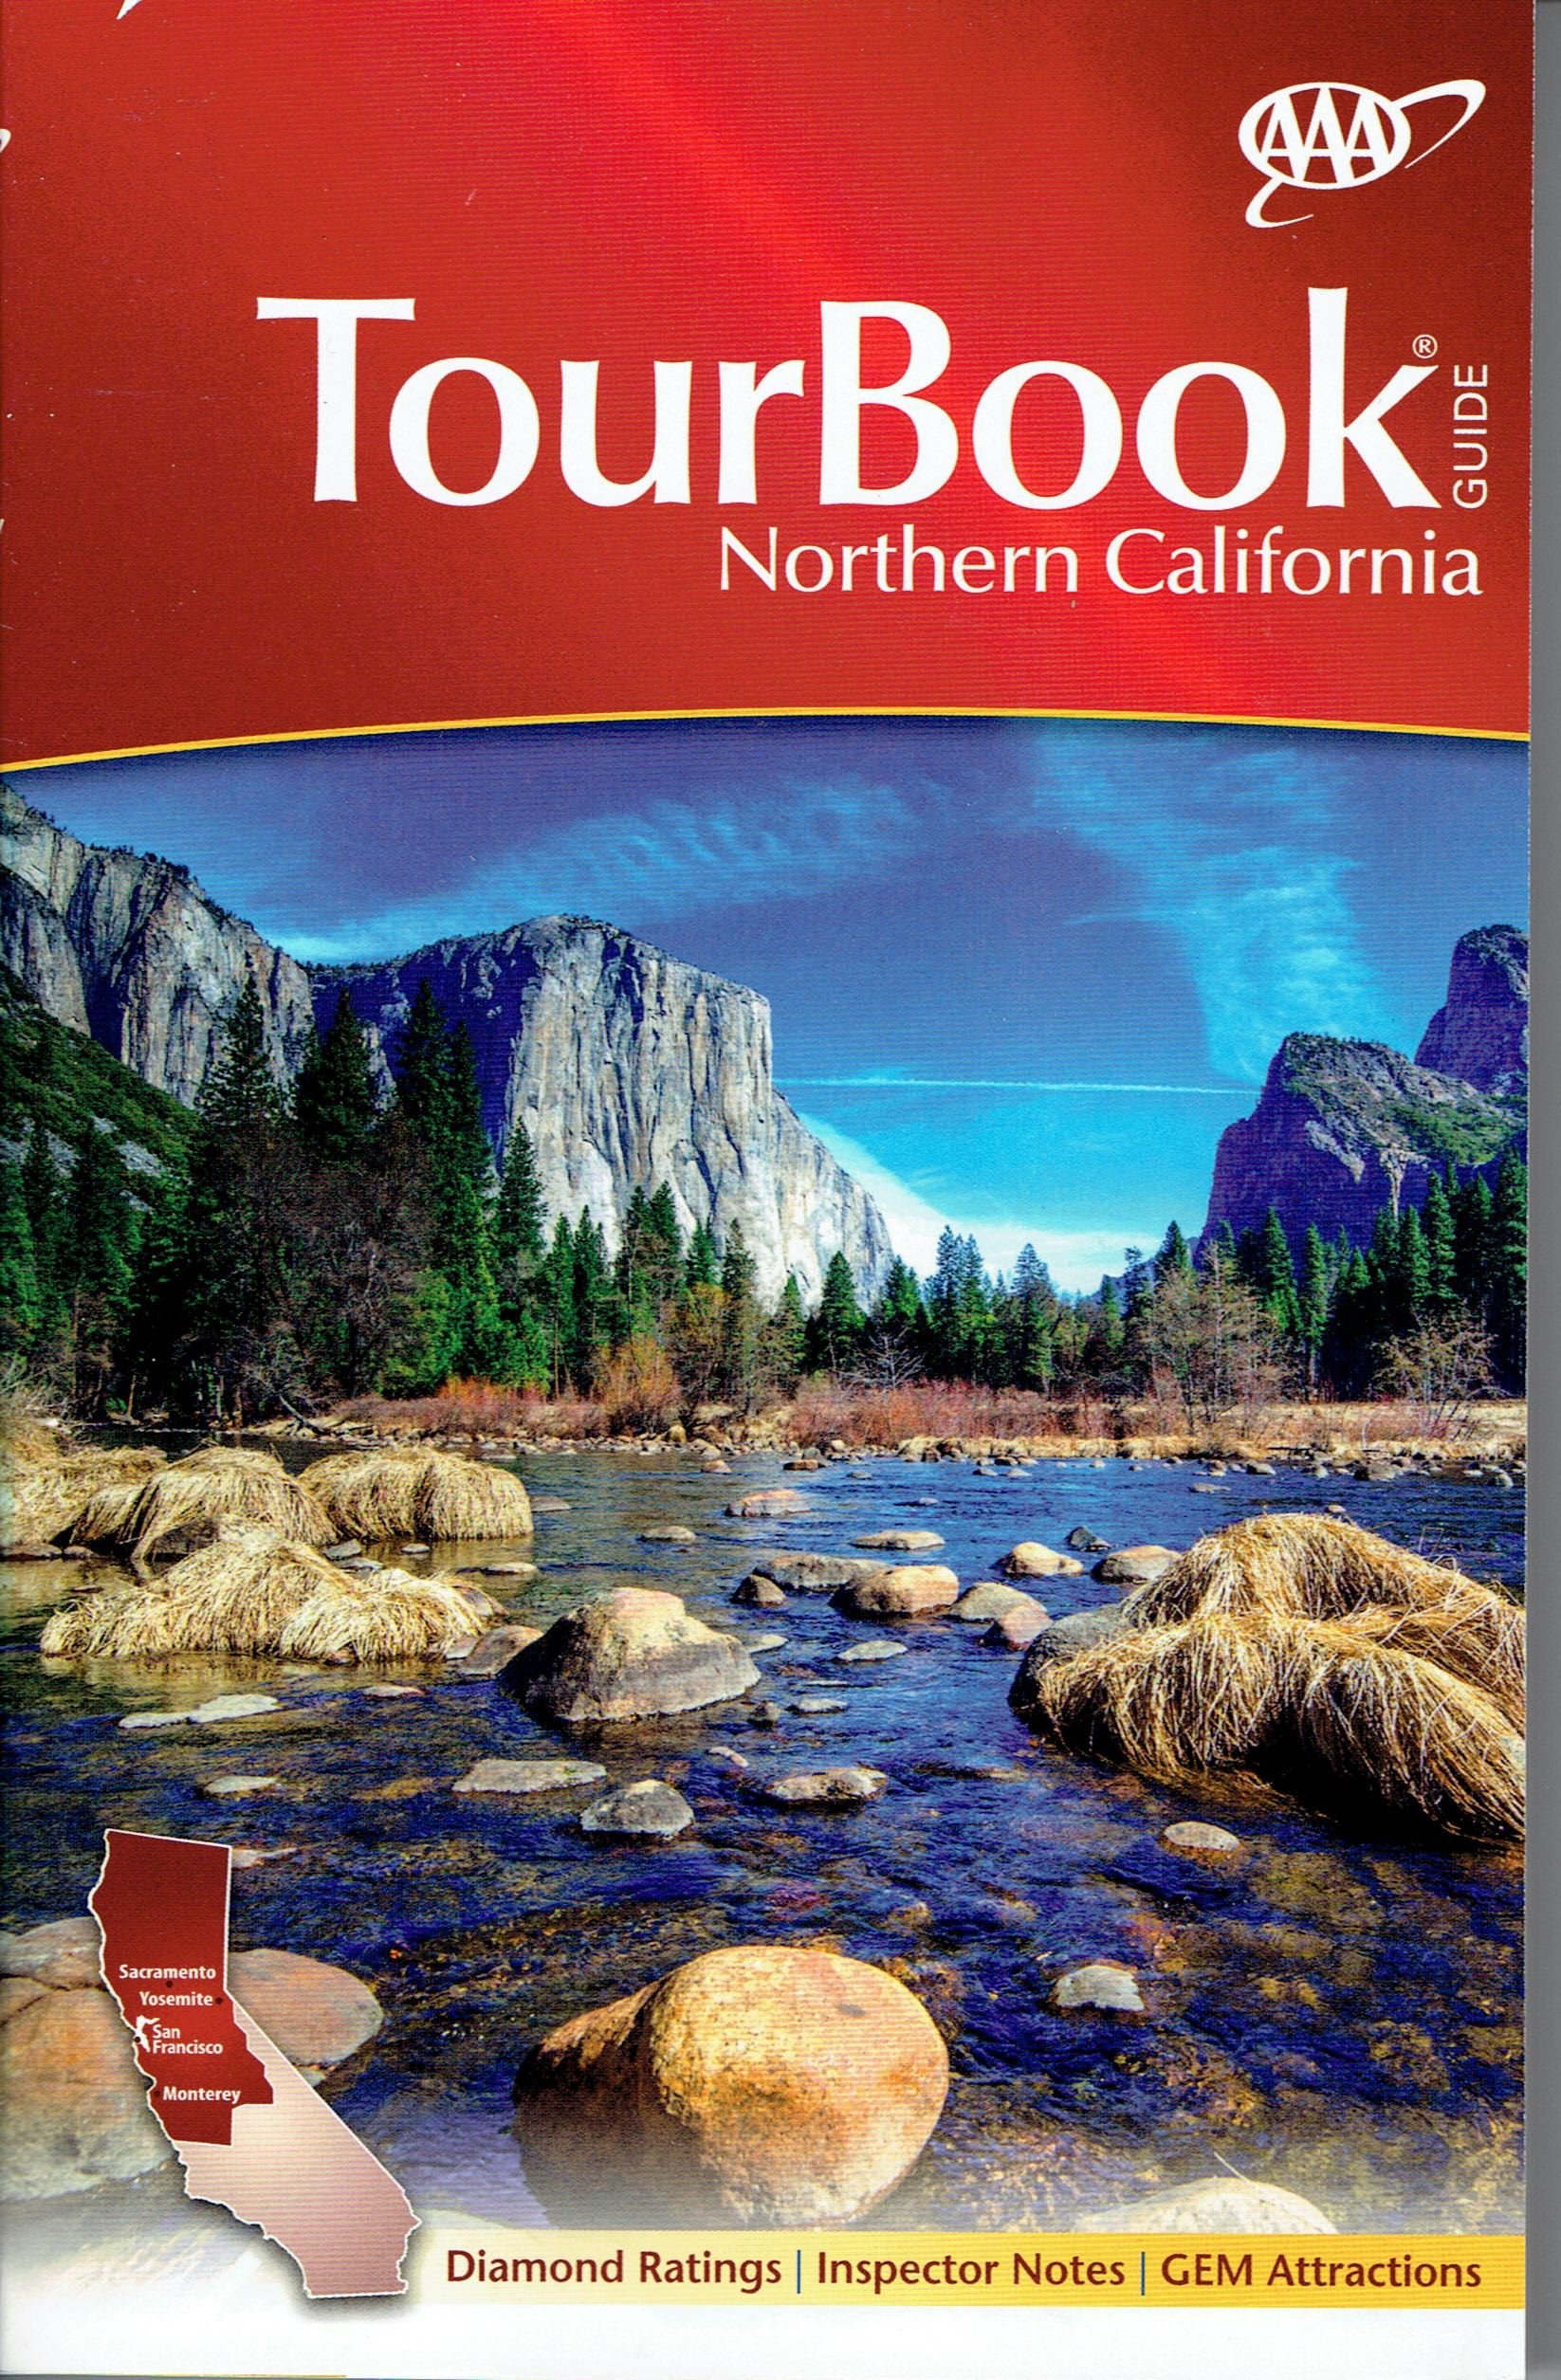 Download Northern California Tour Book Guide 2017 - AAA Look up any town/city to find/compare nearly all hotels, restaurants, attractions with ratings, inspector notes, recommendations. 478 page TourBook pdf epub